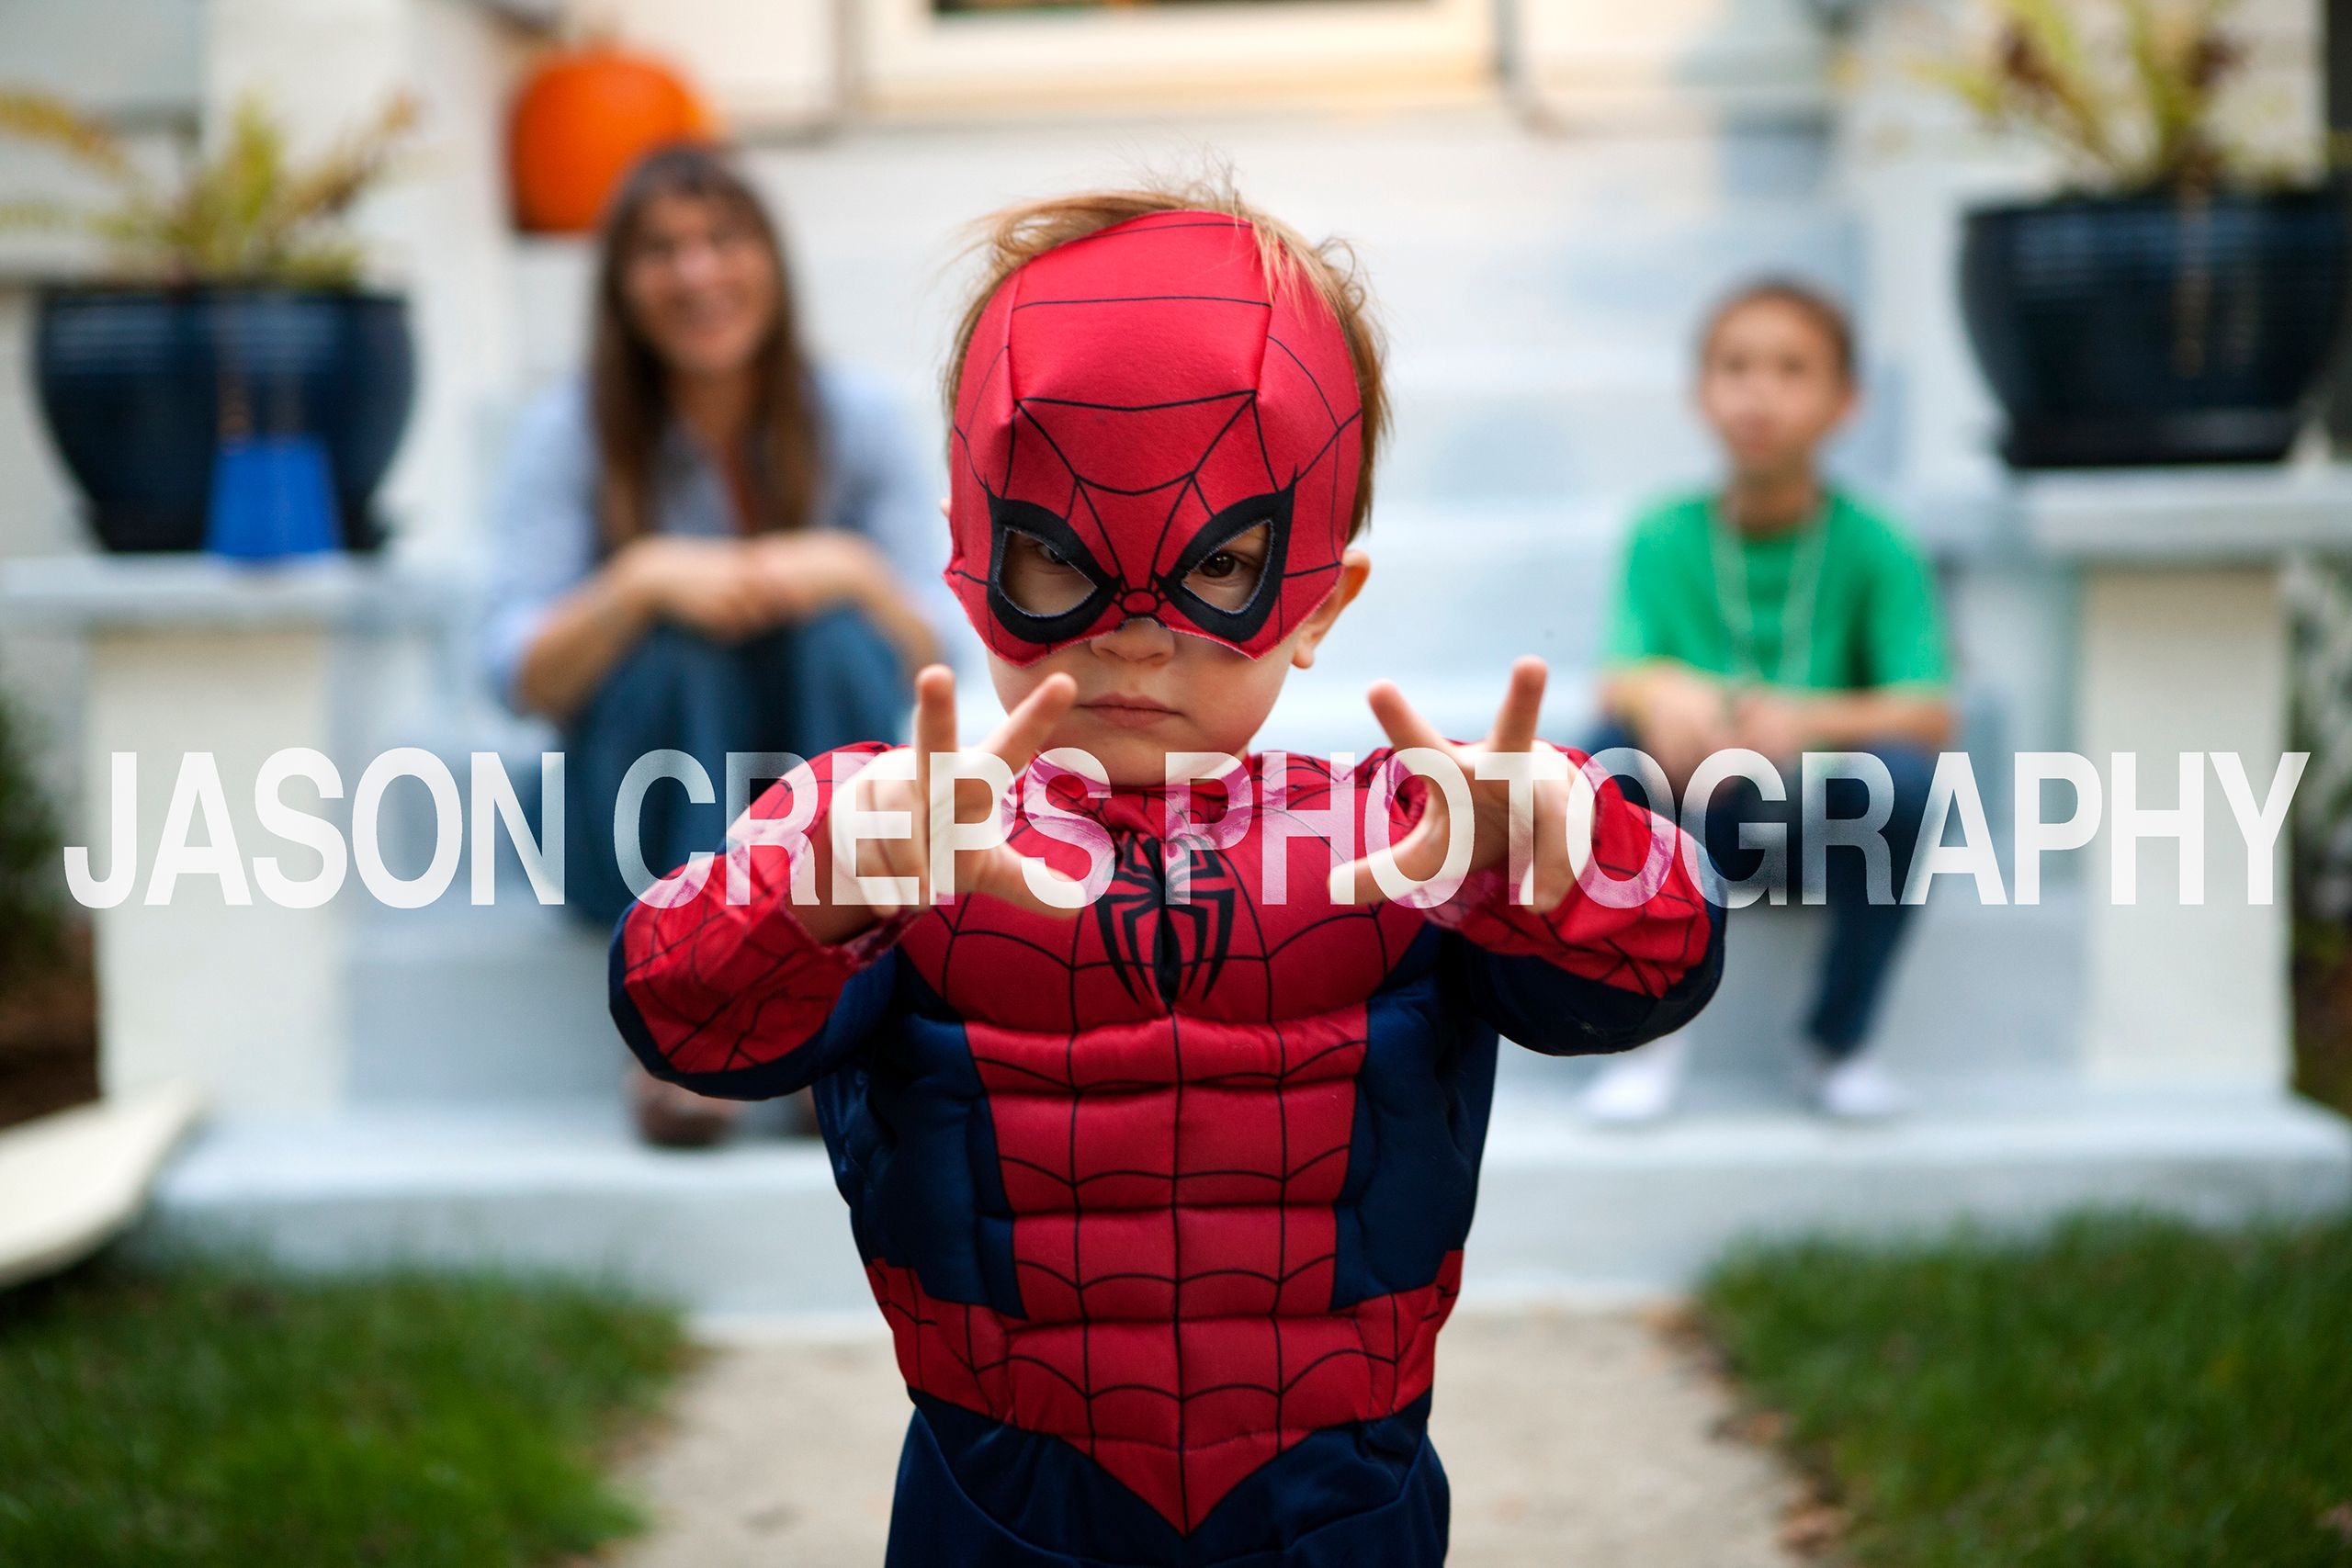 Spiderman_IMG_2053_JasonCrepsPhotogrpahy.jpg